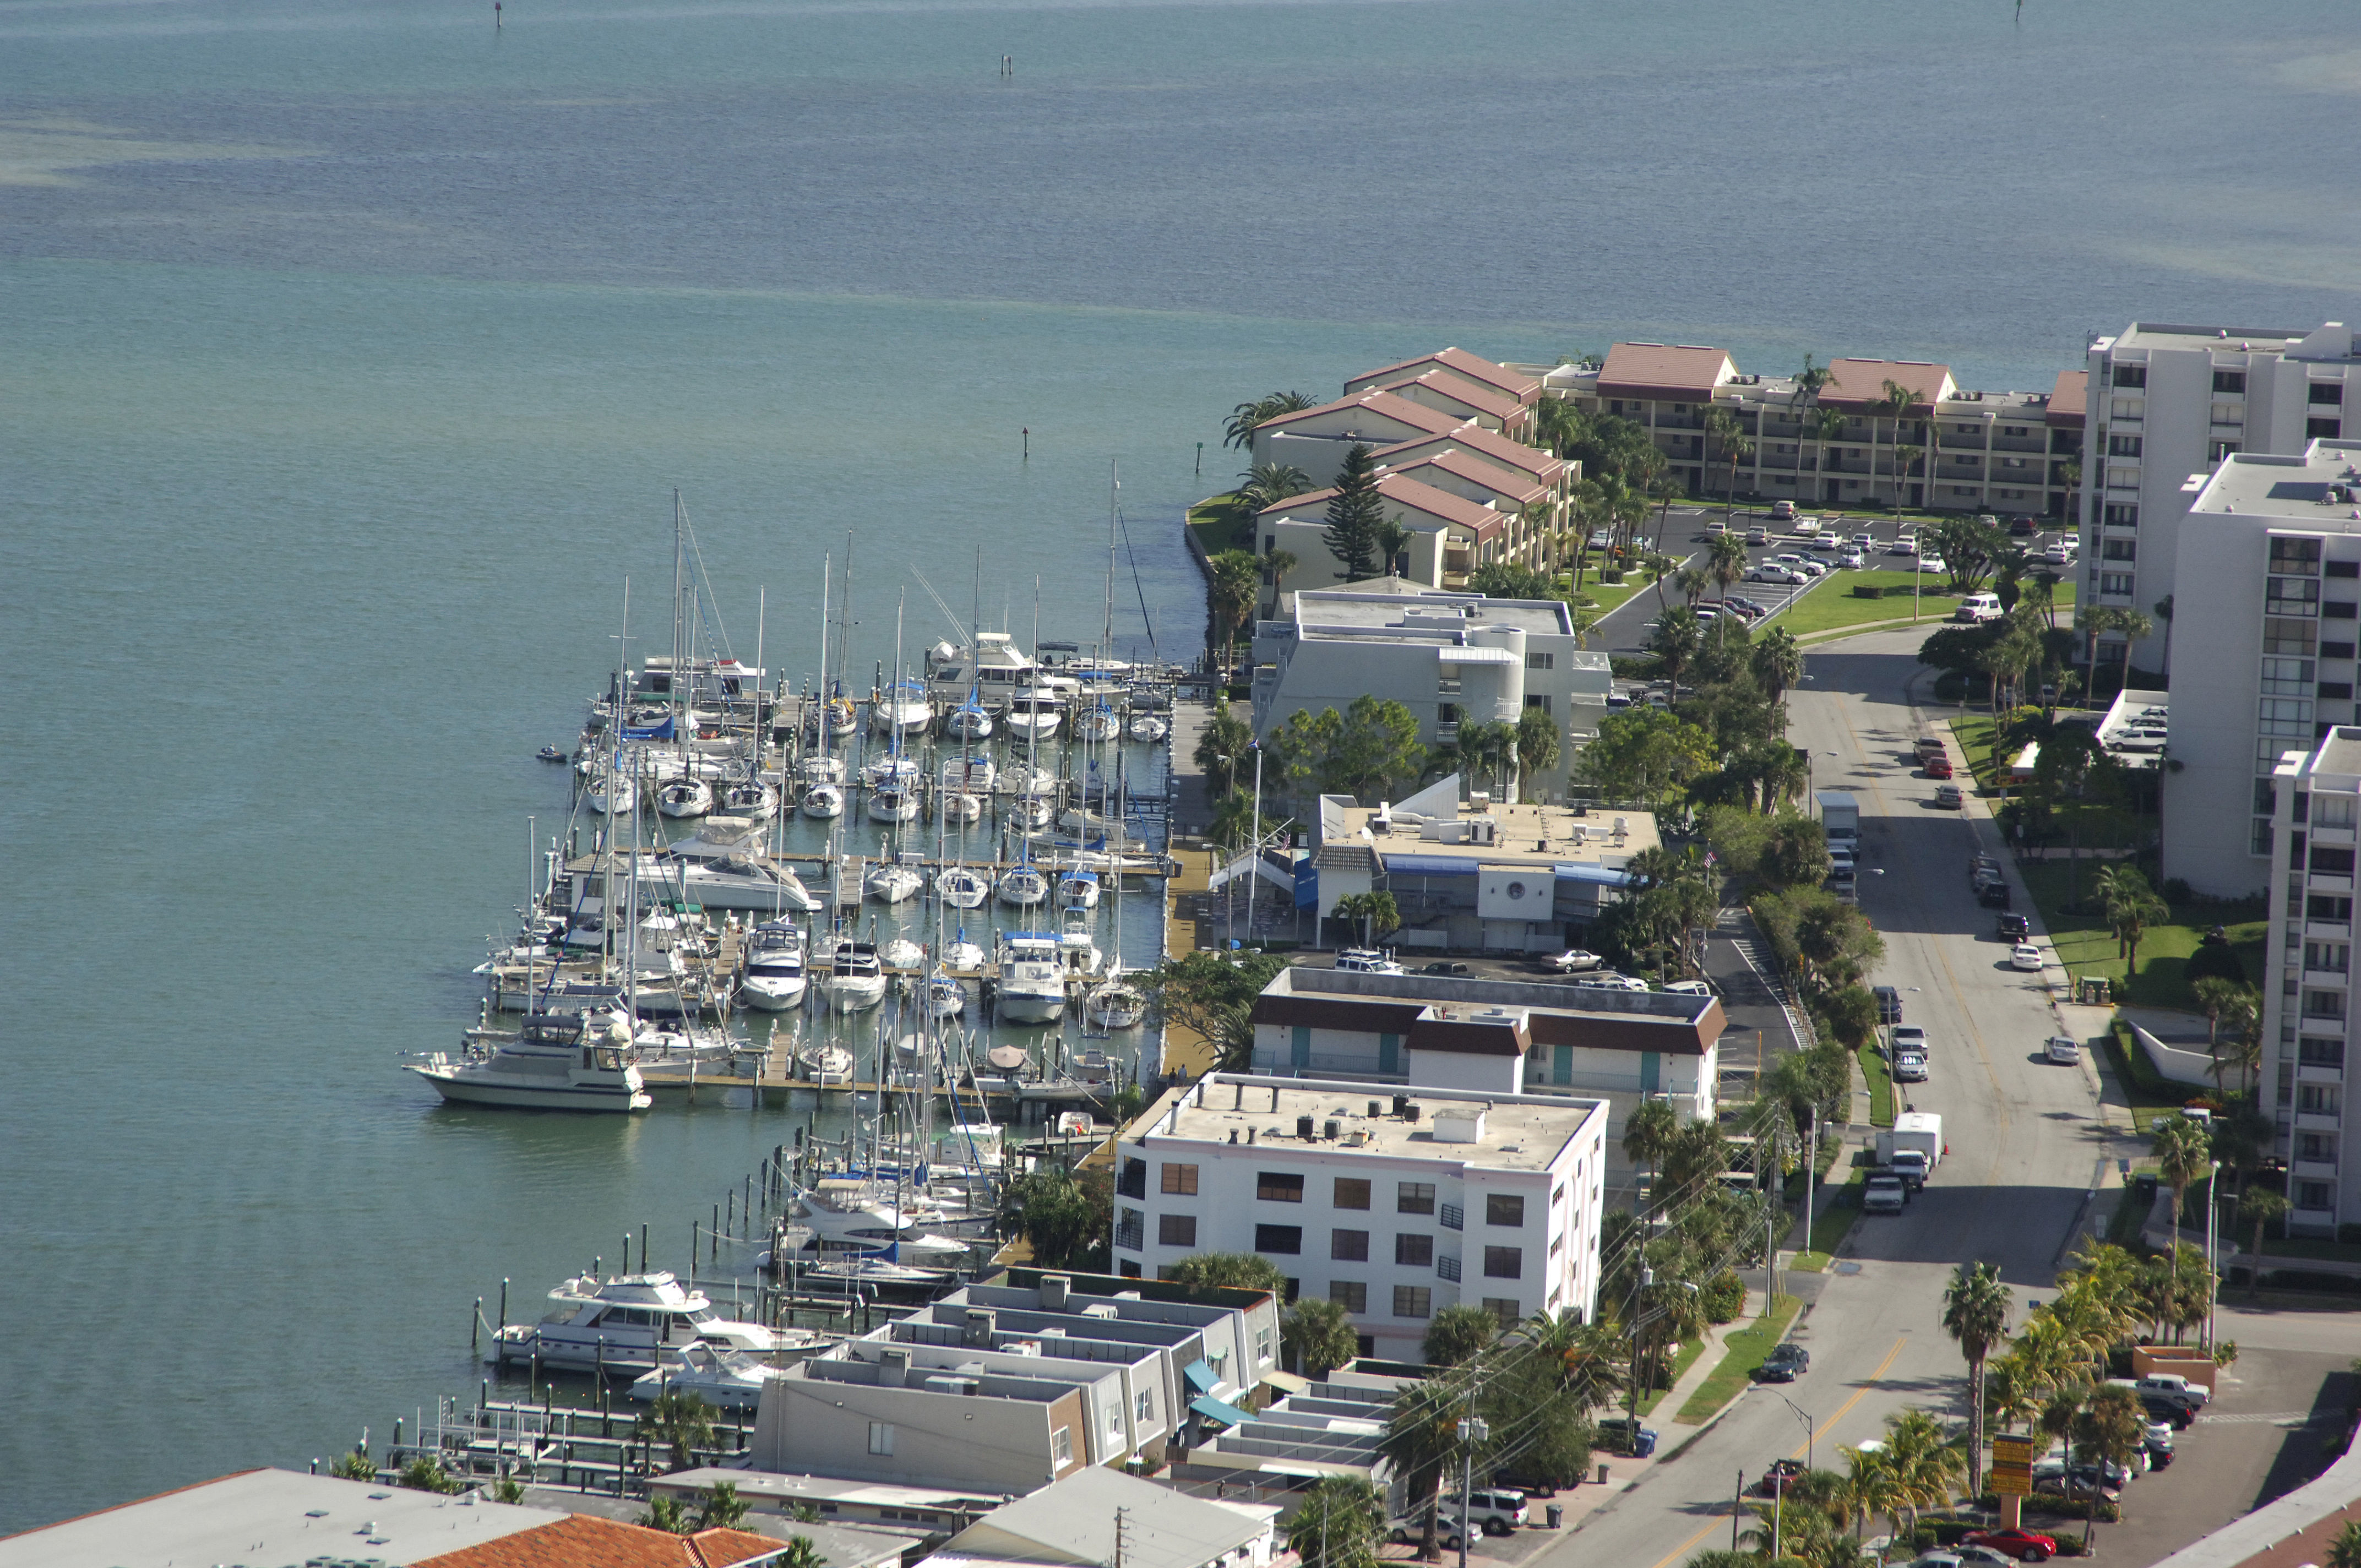 Chart House Suites In Clearwater Beach Fl United States Marina